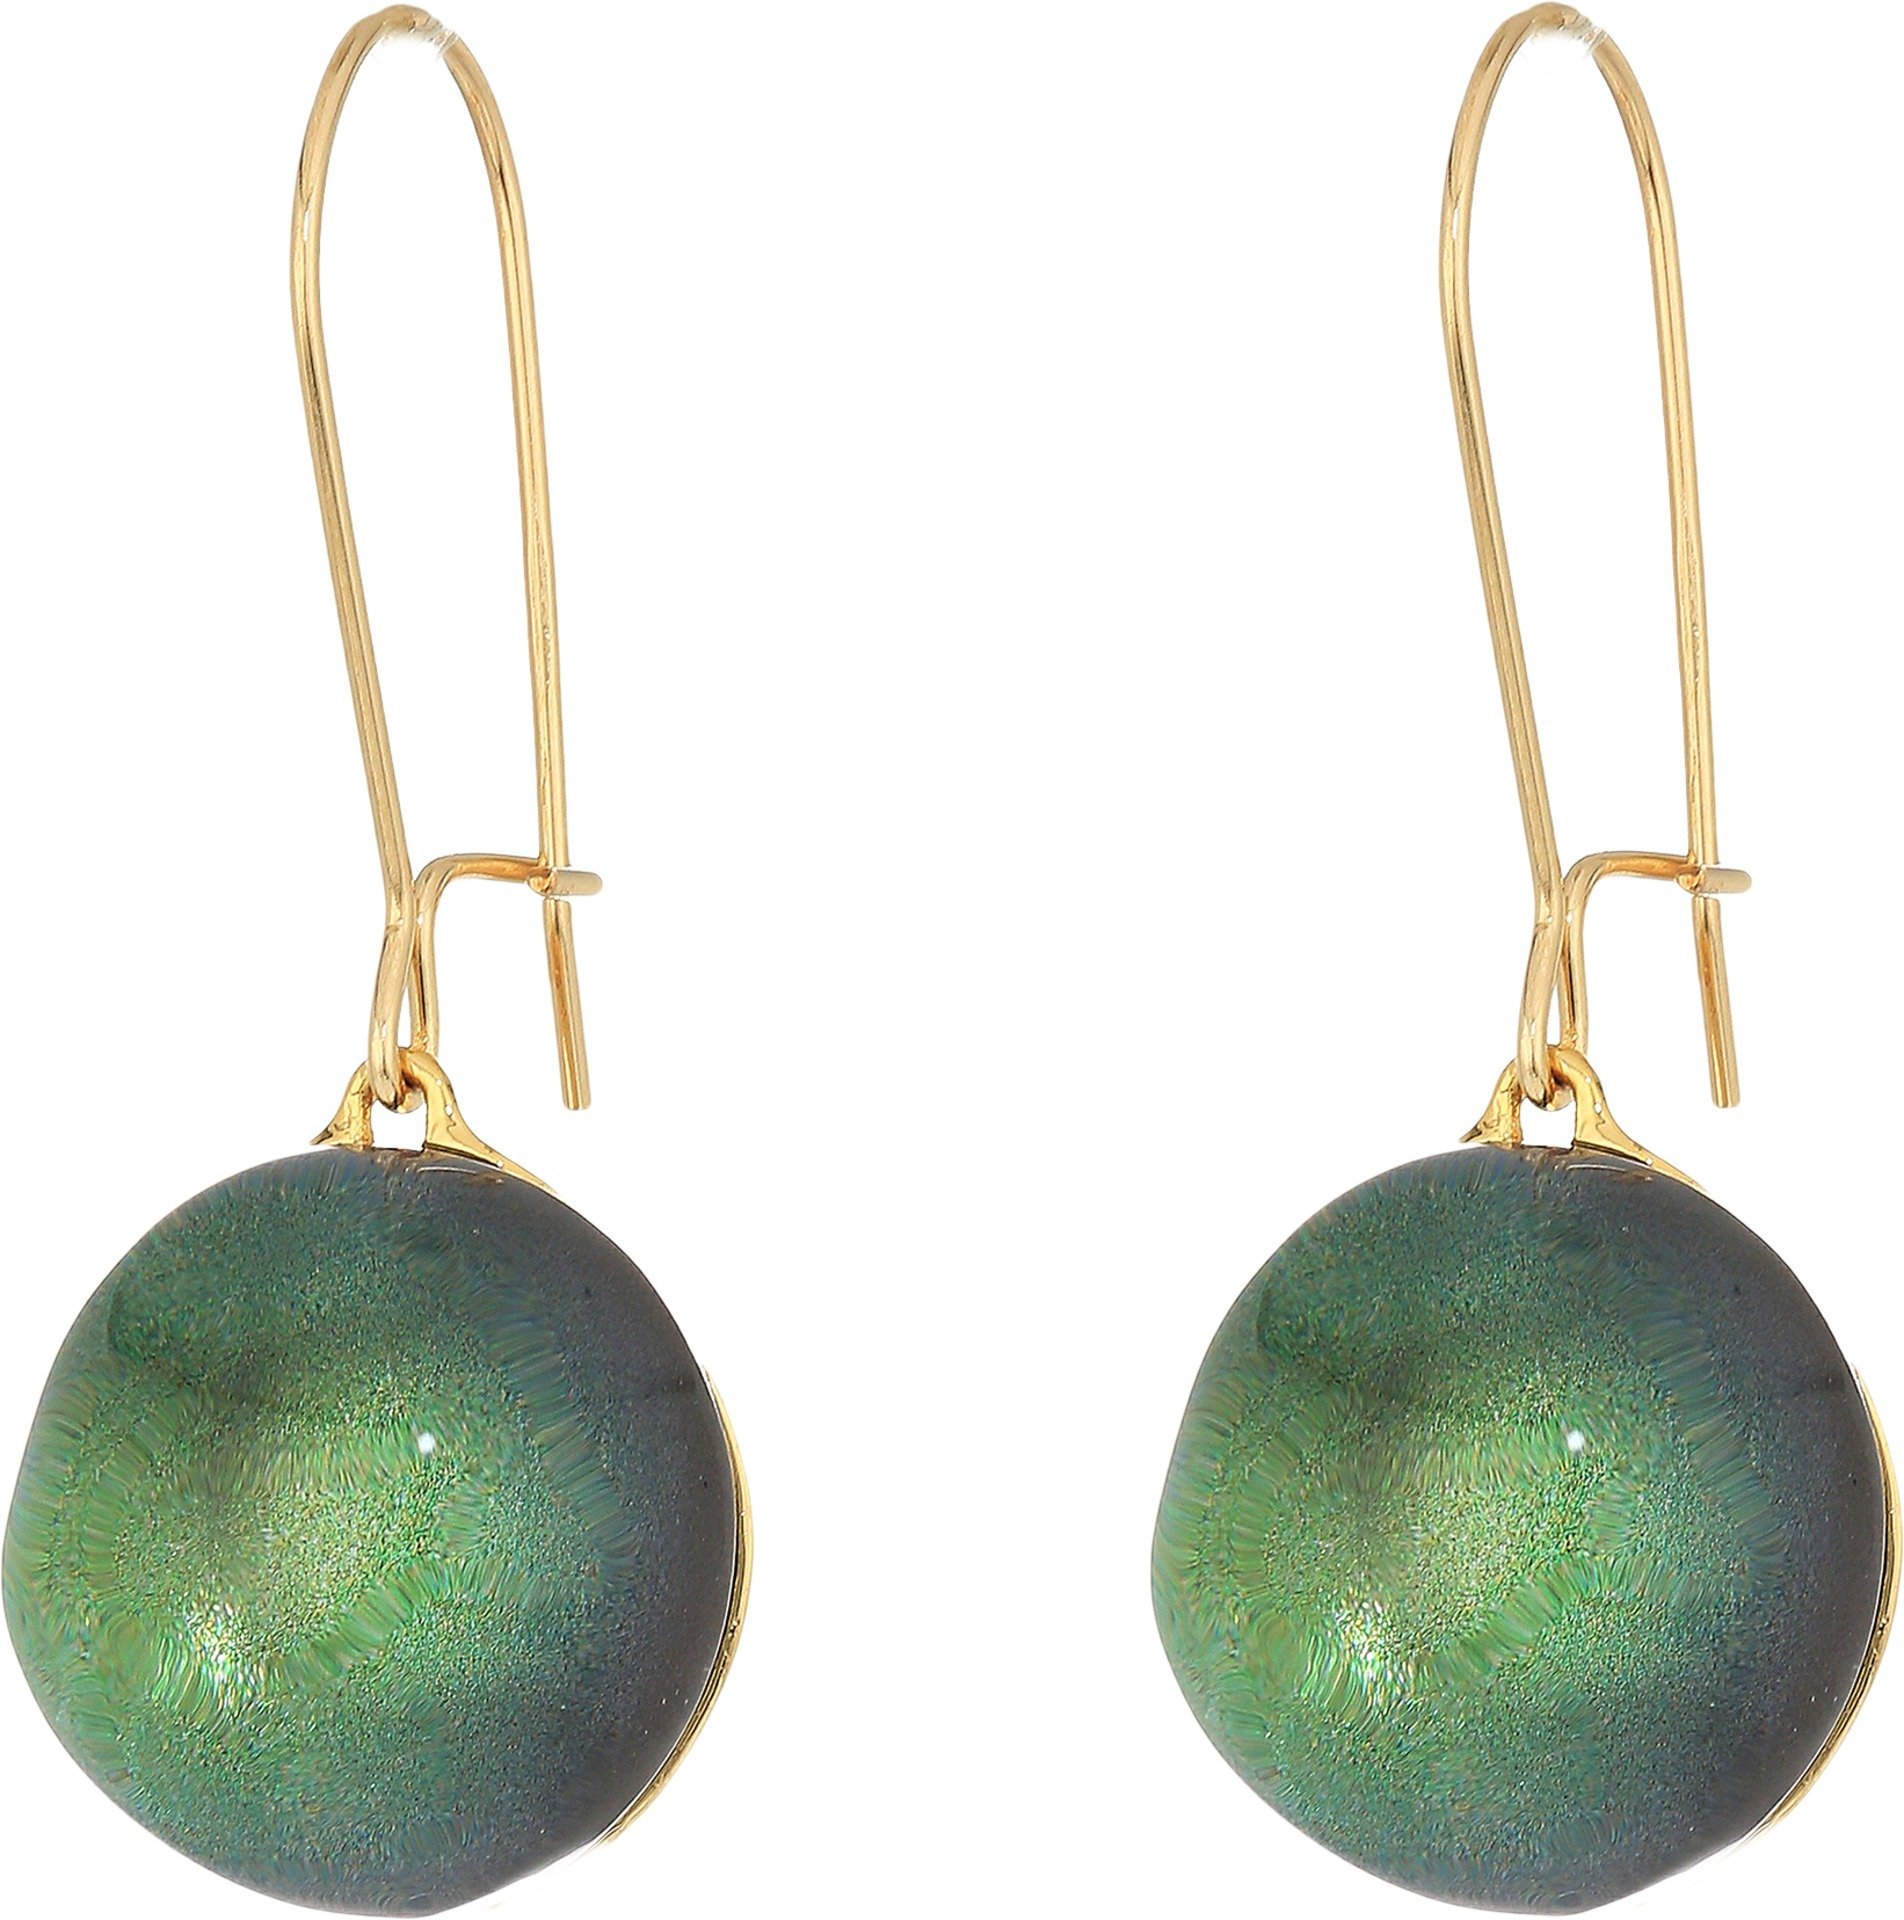 Alexis Bittar Girl's Dangling Sphere Kidney Wire Earrings Deep Jade Earring